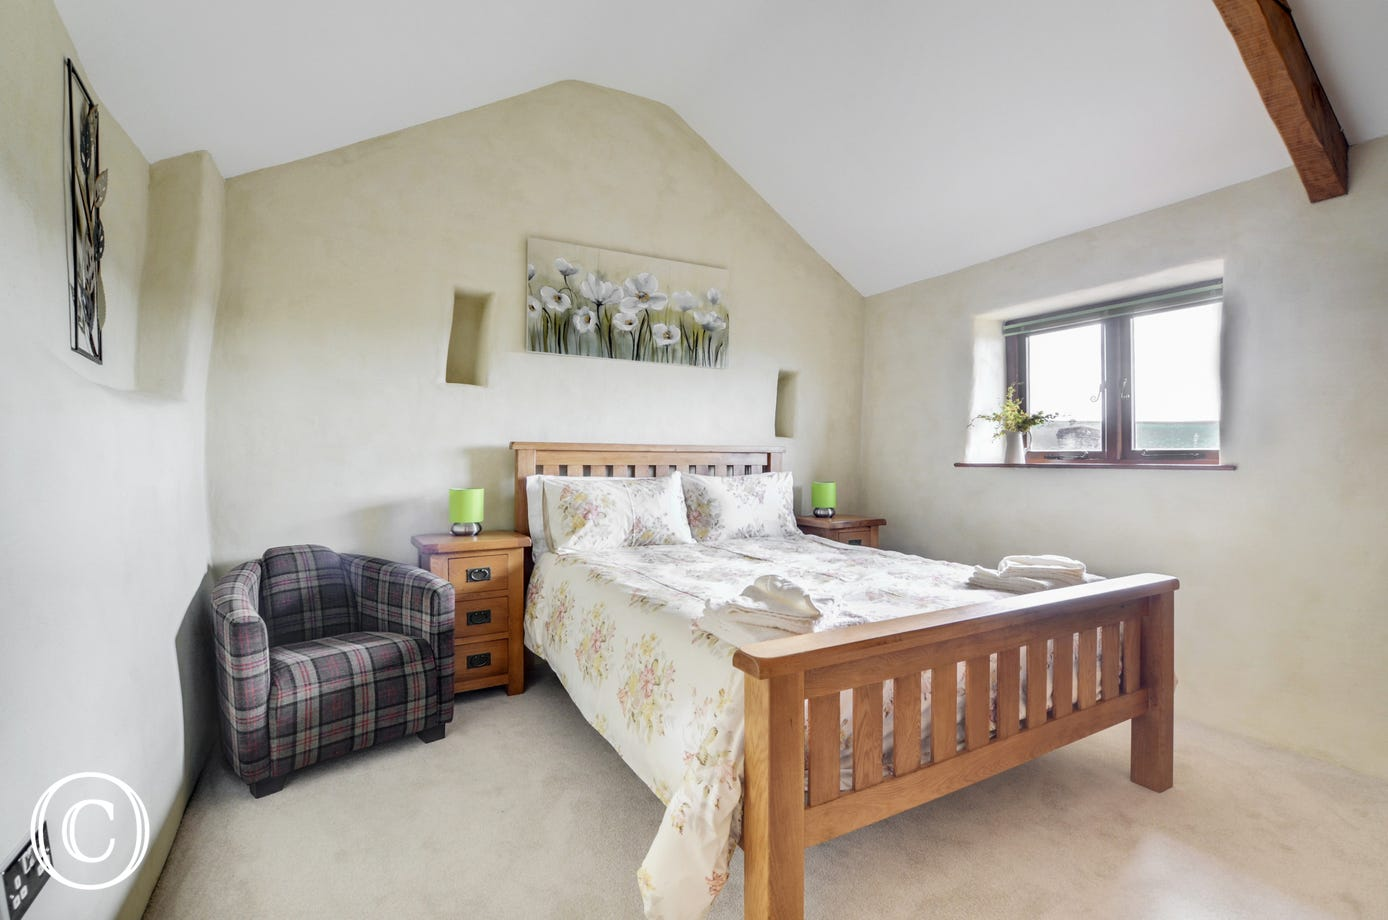 An attractive bedroom with Kingsize bed and shower room complete the internal accommodation